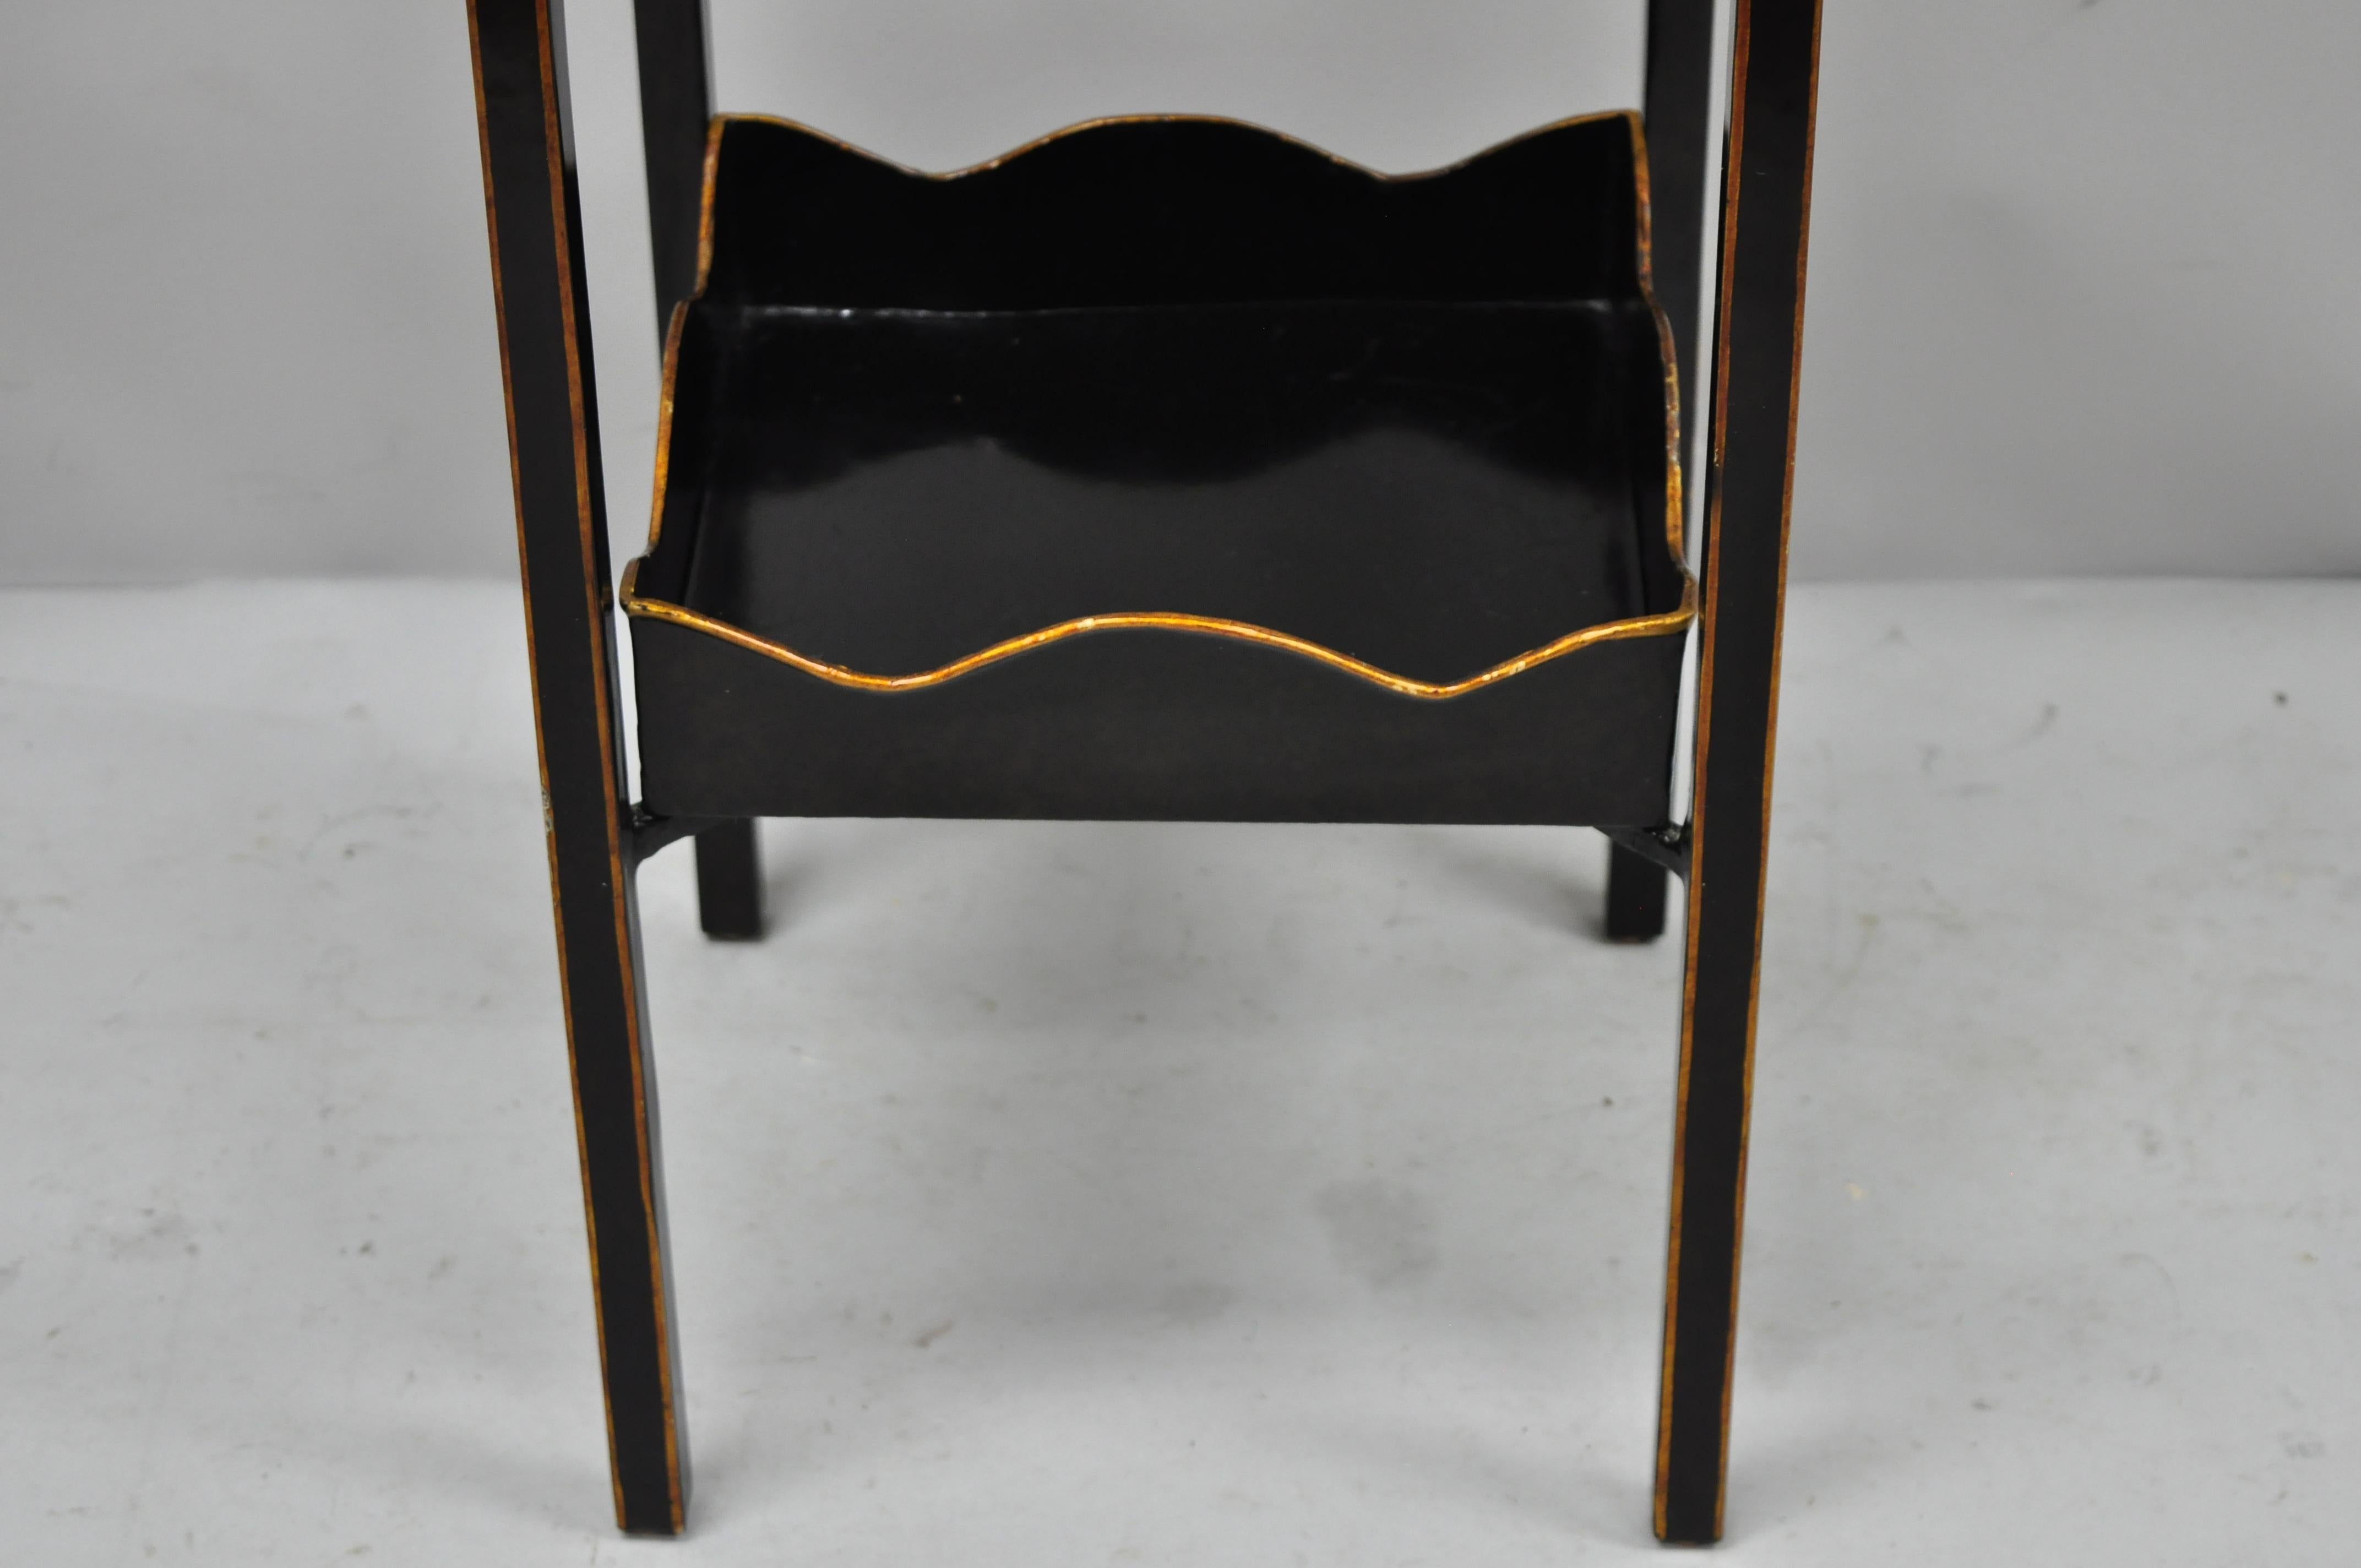 Maitland Smith Inlaid Marble Top Wrought Iron Plant Stand